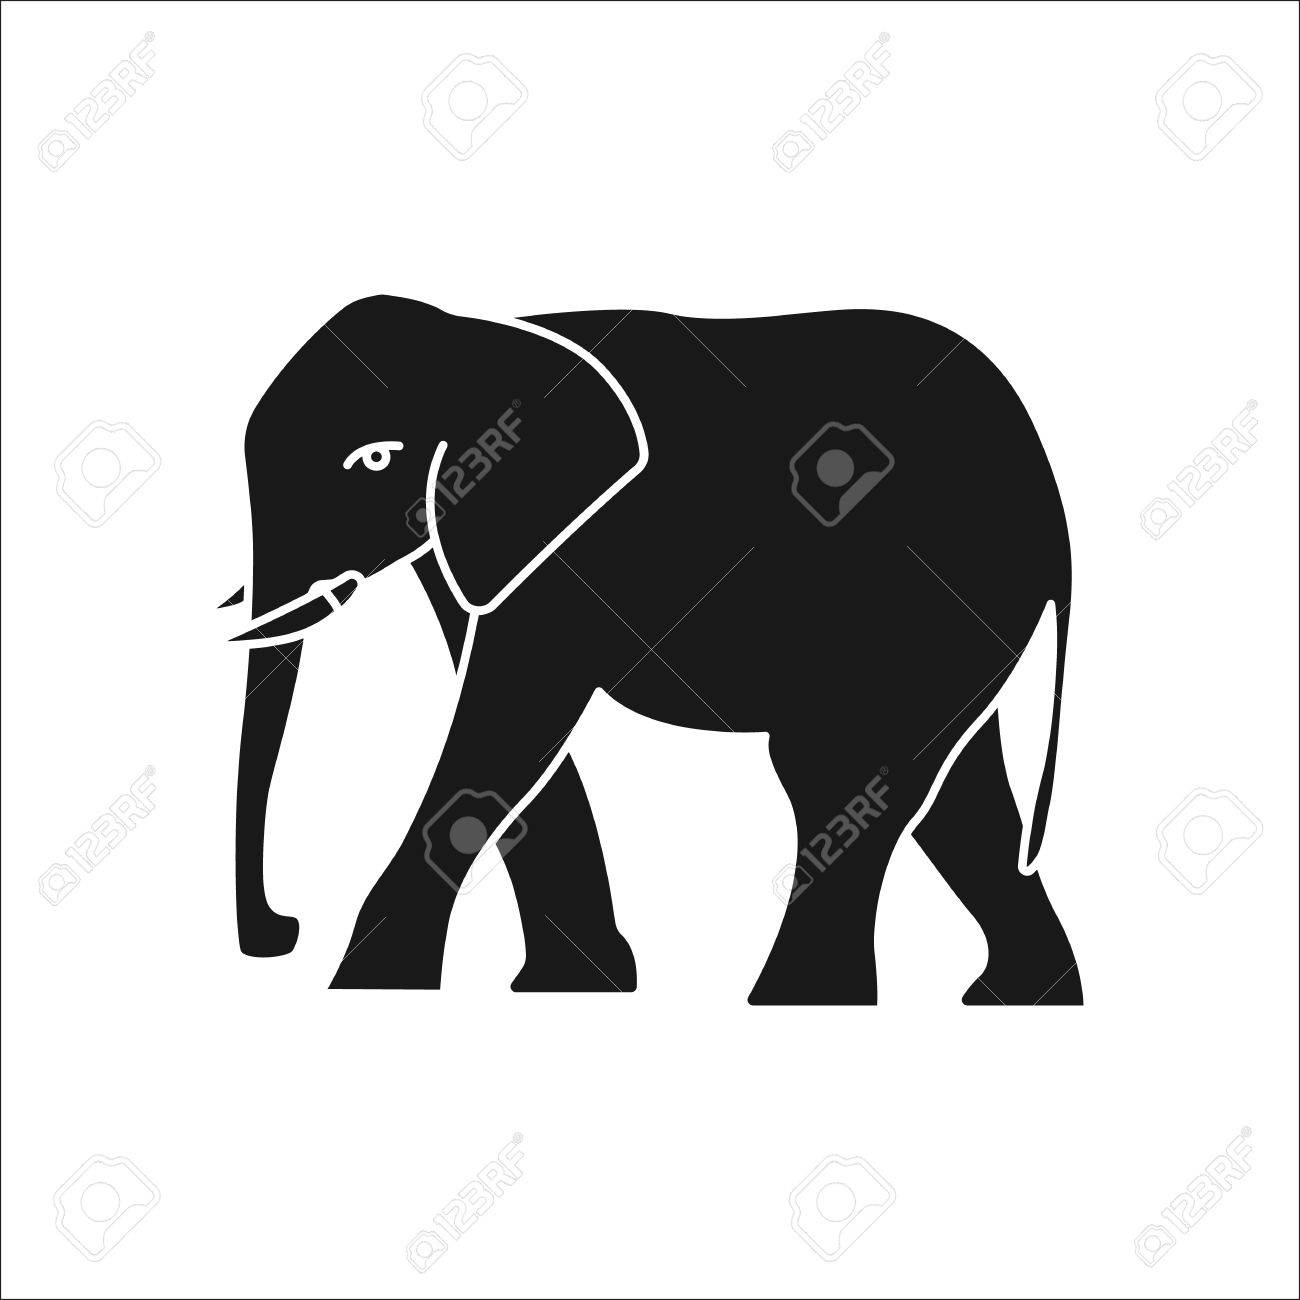 Elephant symbol sign silhouette icon on background stock photo elephant symbol sign silhouette icon on background stock photo 70724132 buycottarizona Images